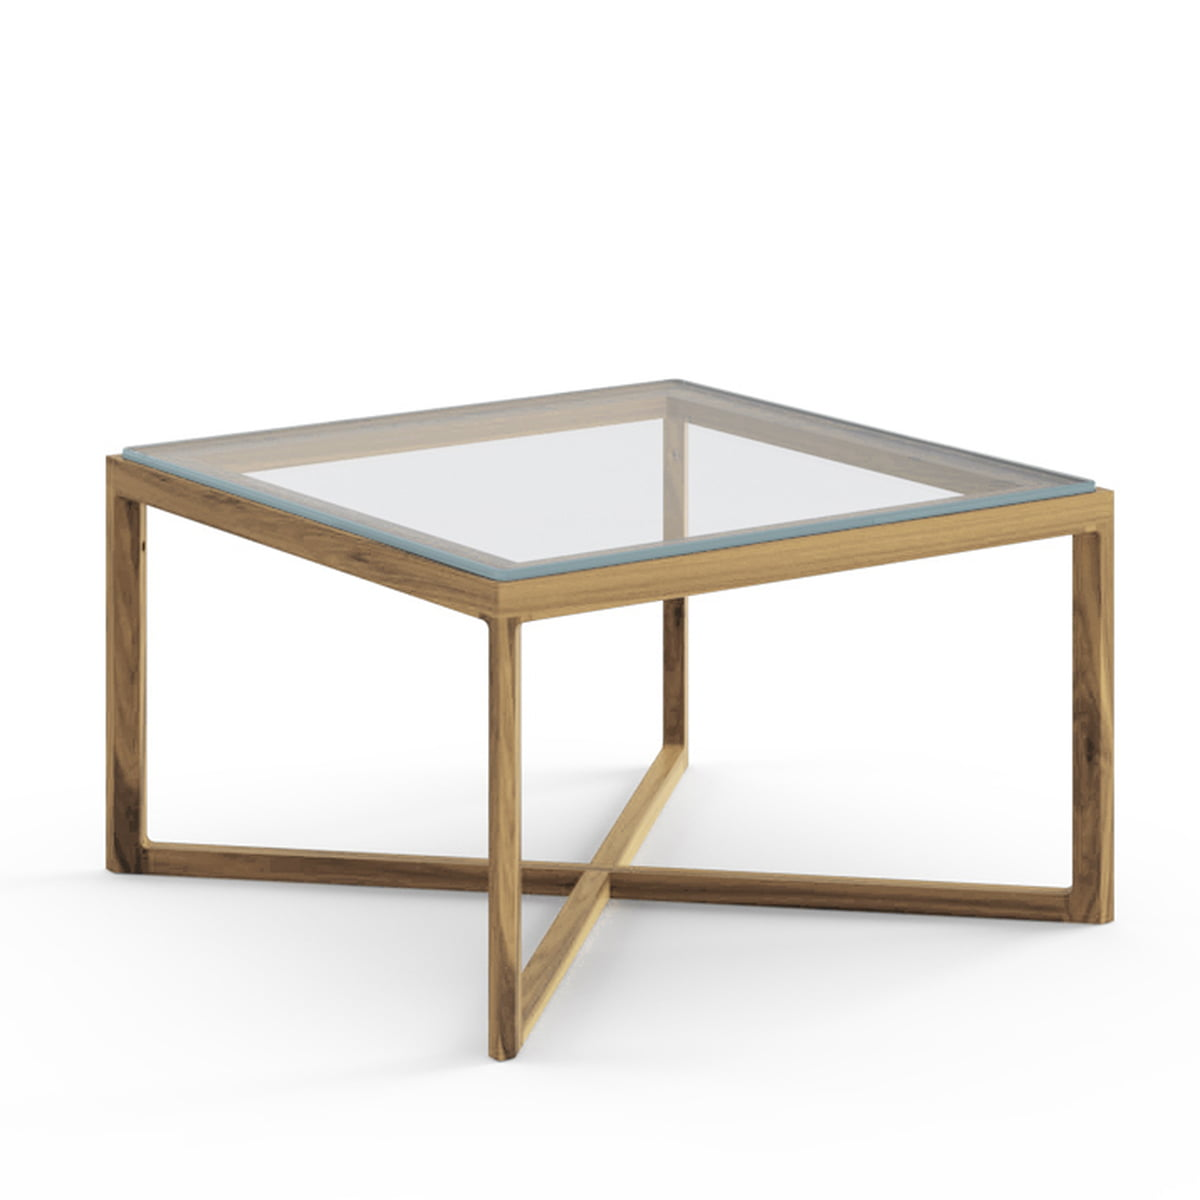 the marc krusin side table from knoll niedrigerbeistelltisch eiche natur glas oak end tables with glass top clear bedside units console behind sofa faux marble piece coffee and